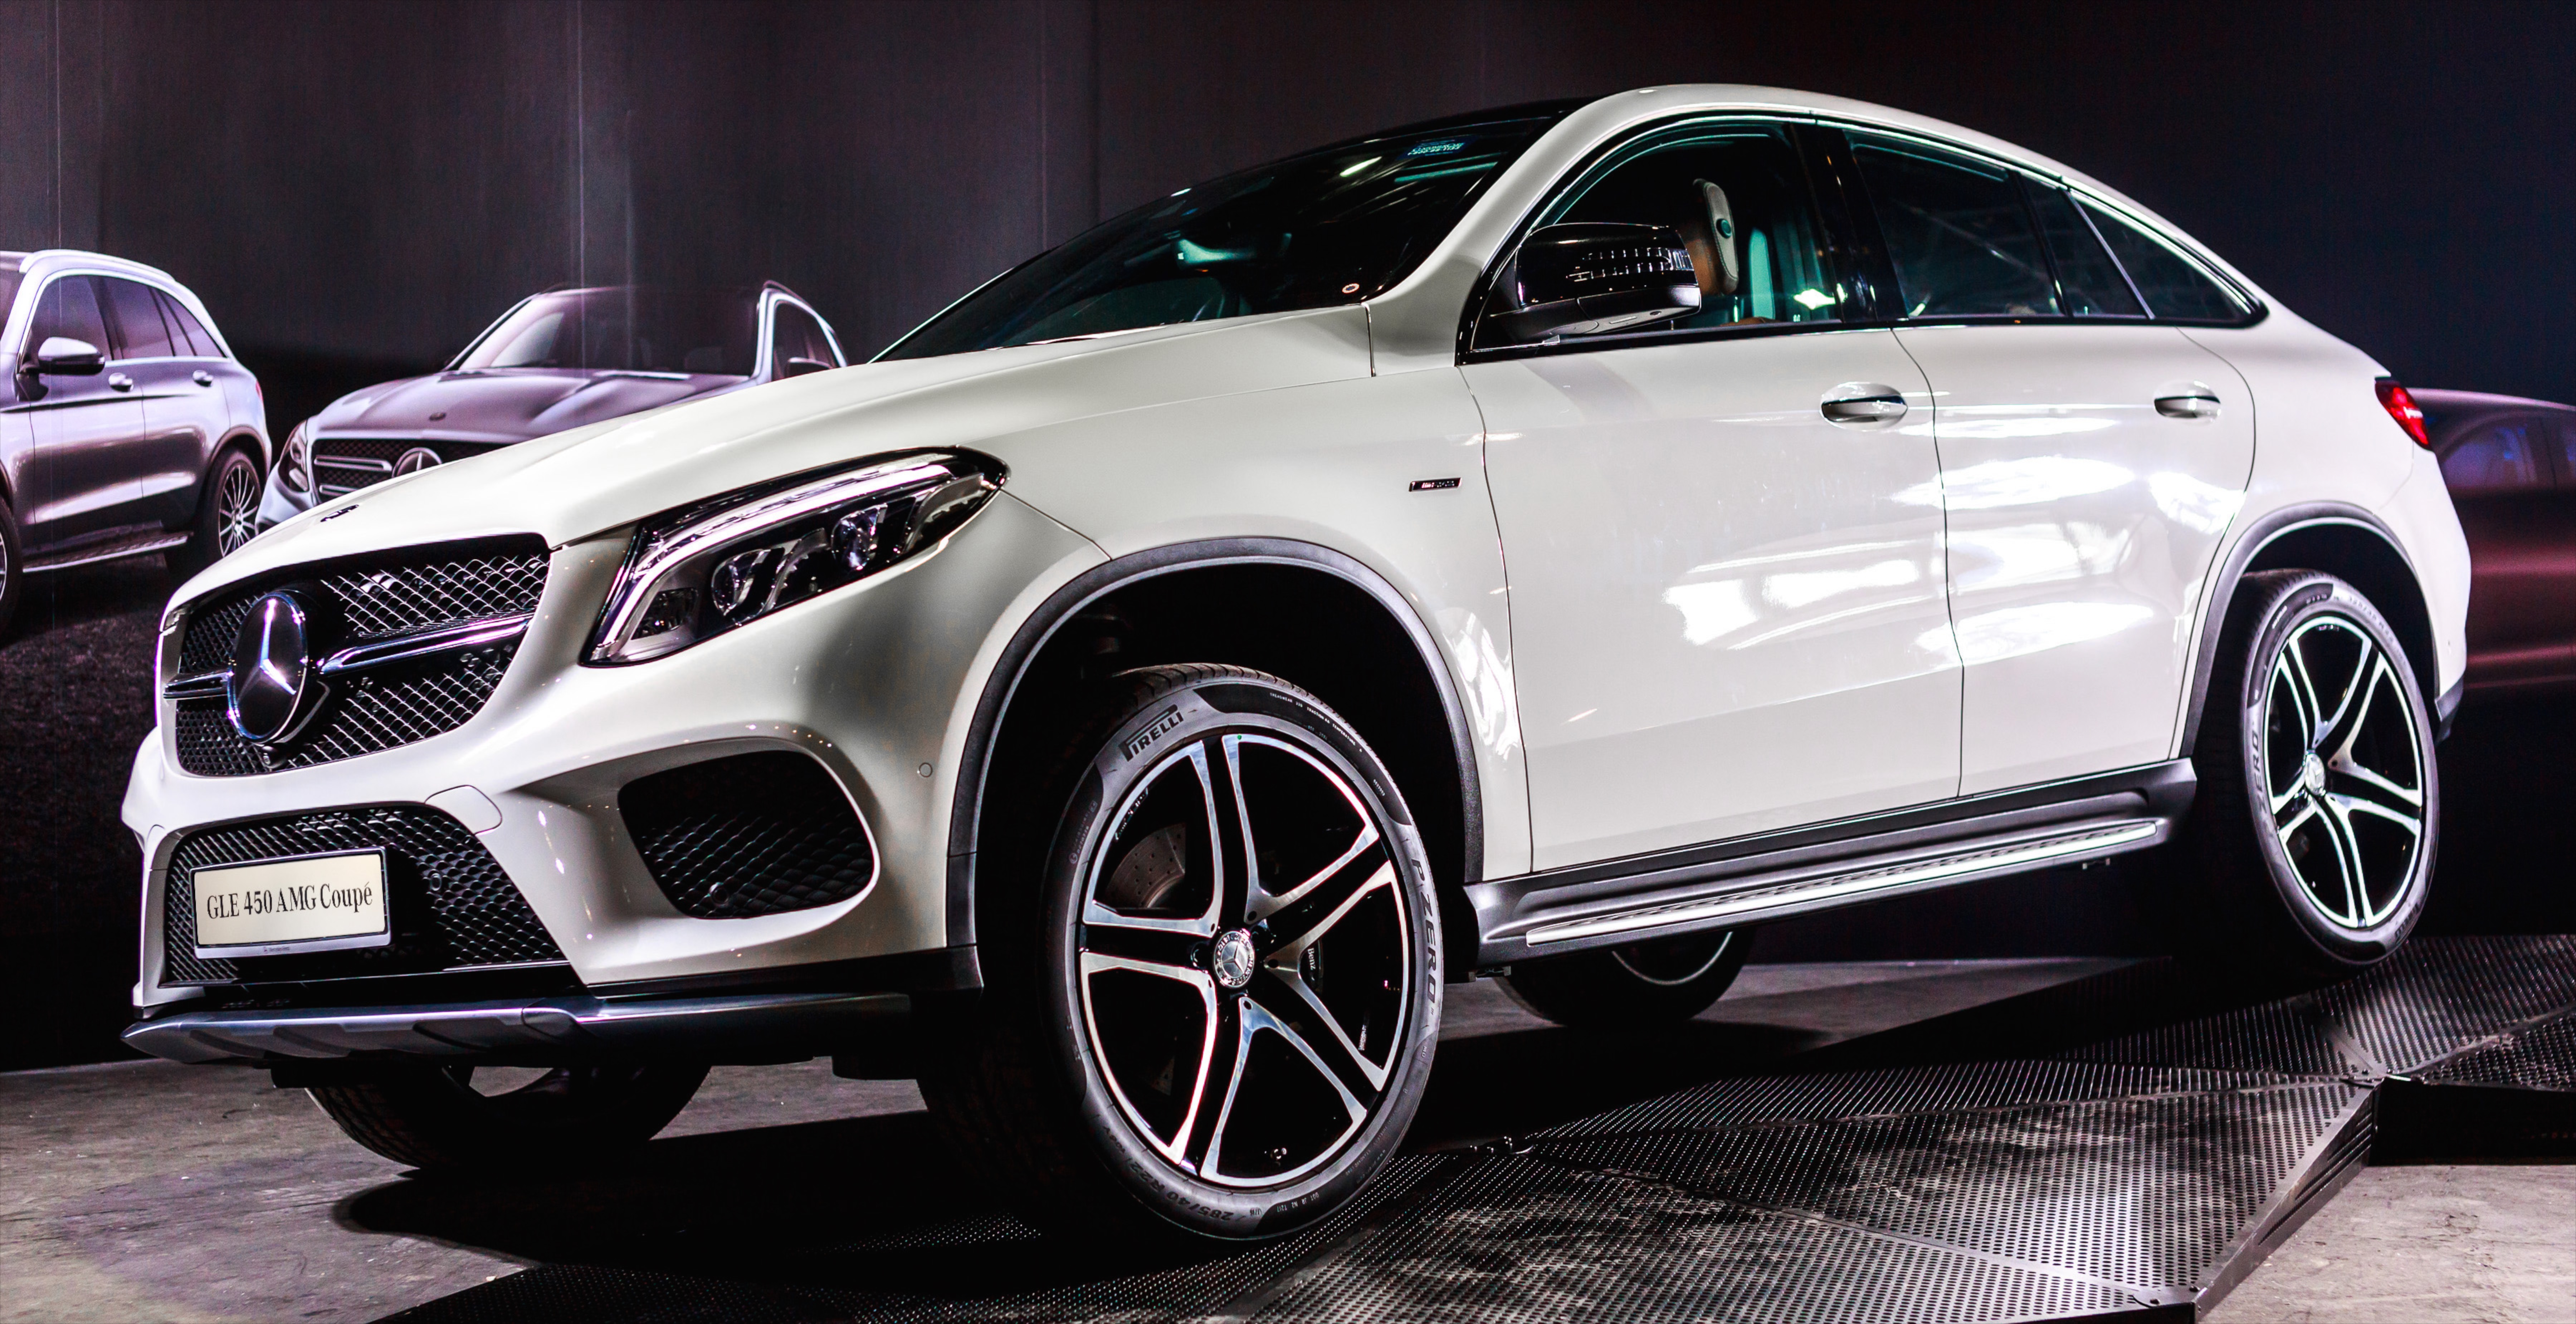 Mercedes Benz Gle Coupe Prices Equipment Revised Paultan Org